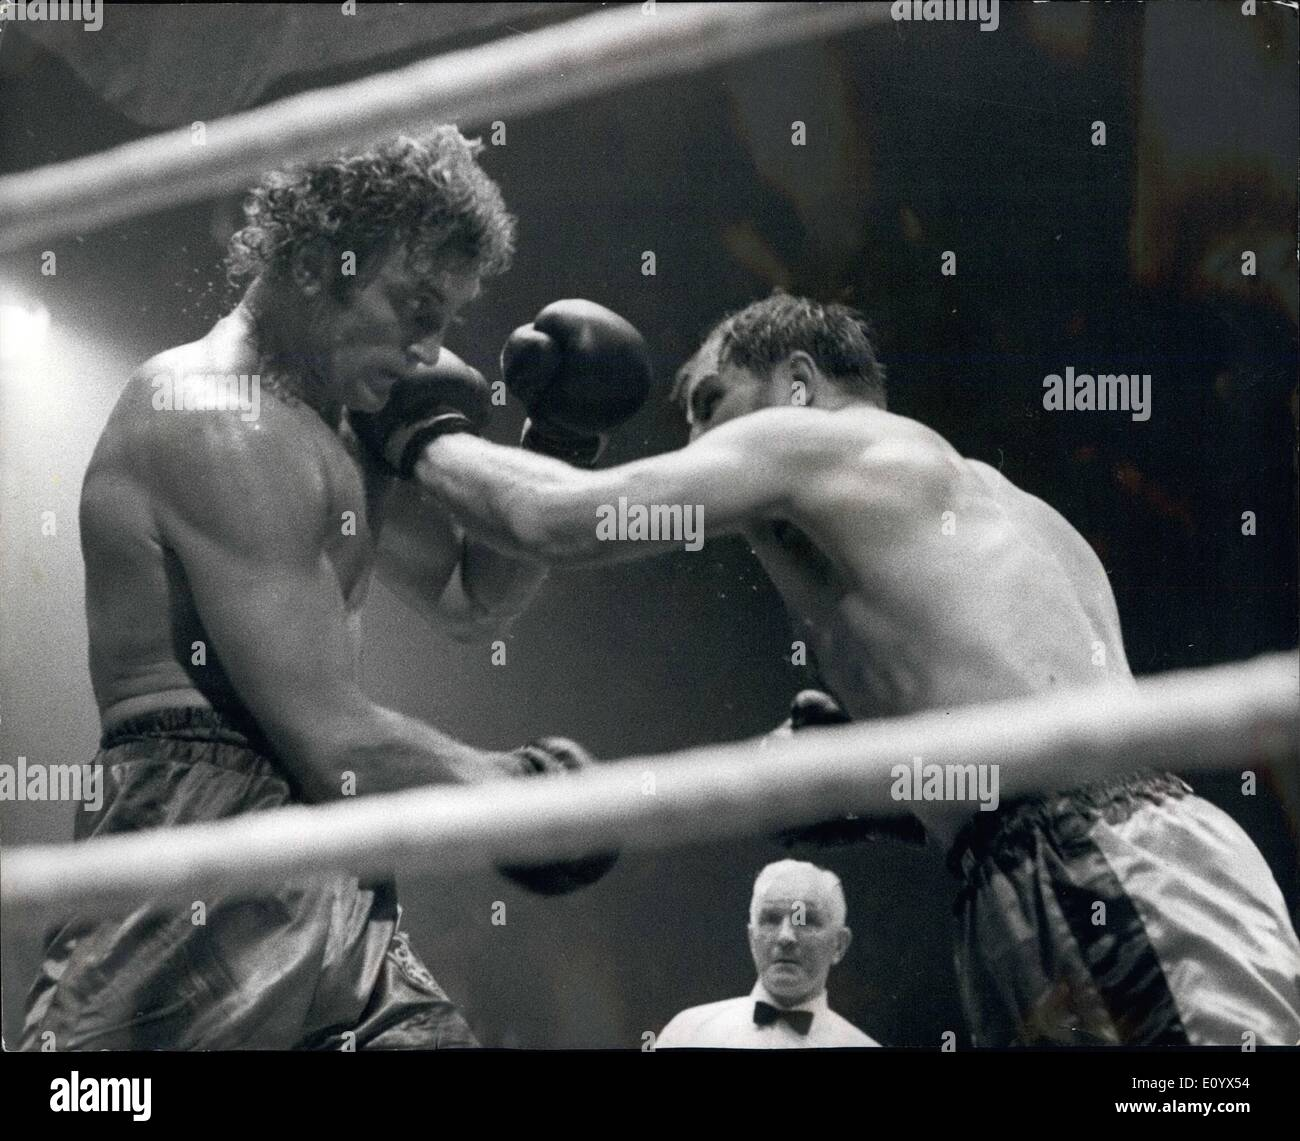 Sep. 09, 1971 - Jack Bodell beats Joe Bugner.: Jack Bodell last night became the British, European and Commonwealth Heavyweight - Stock Image